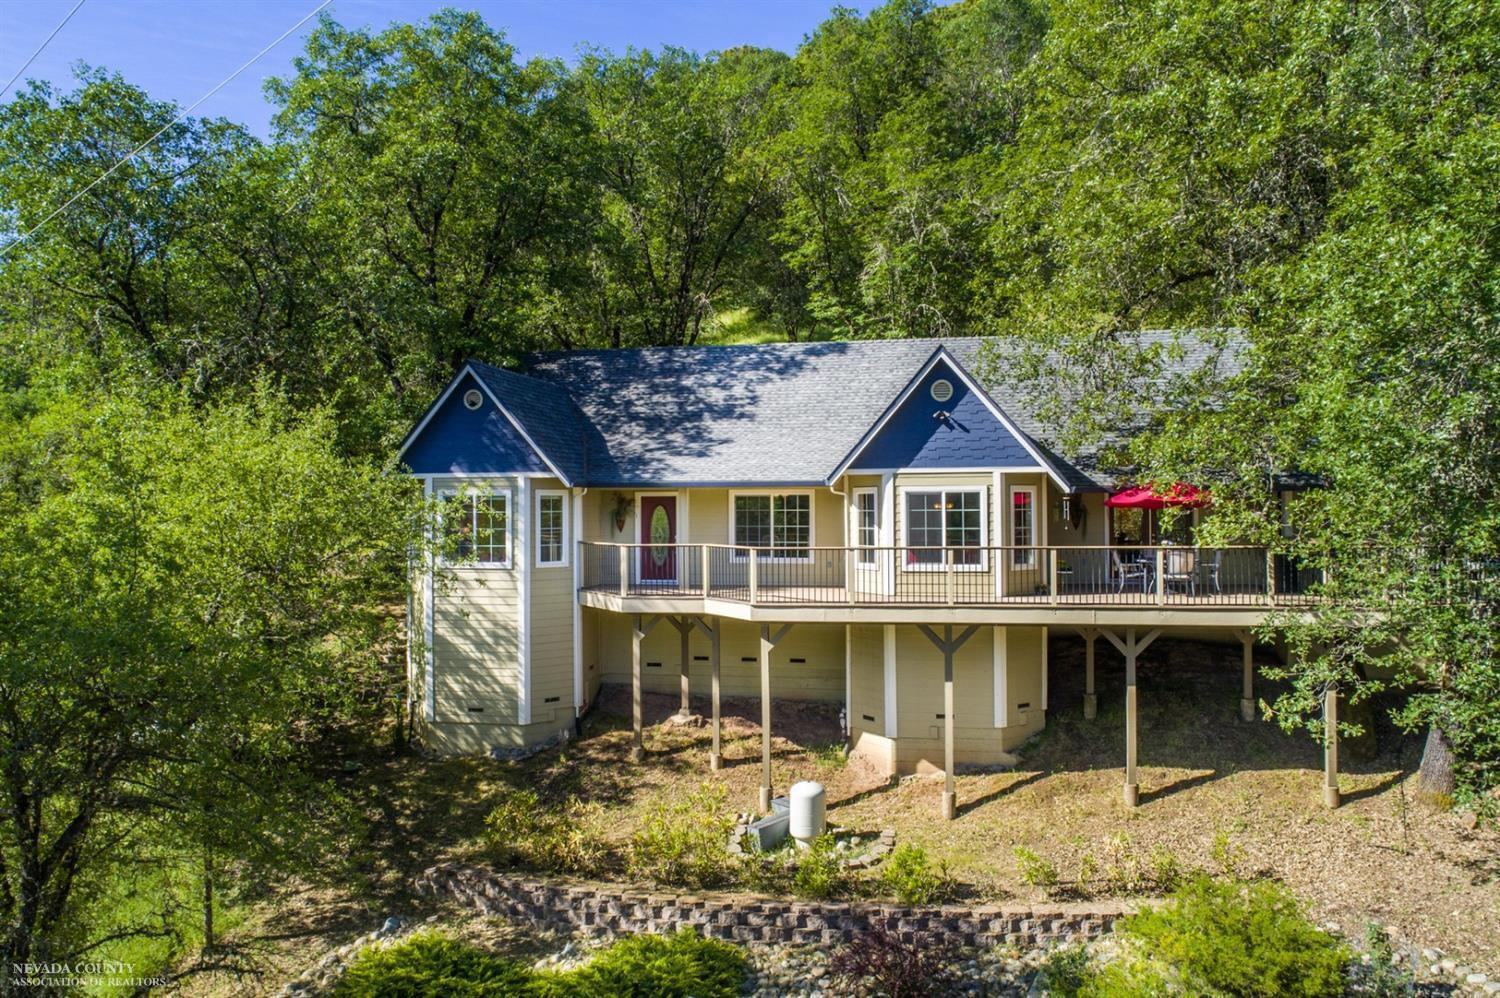 Listing: 15536 Clover Valley Road, Grass Valley, CA | MLS# 20181431